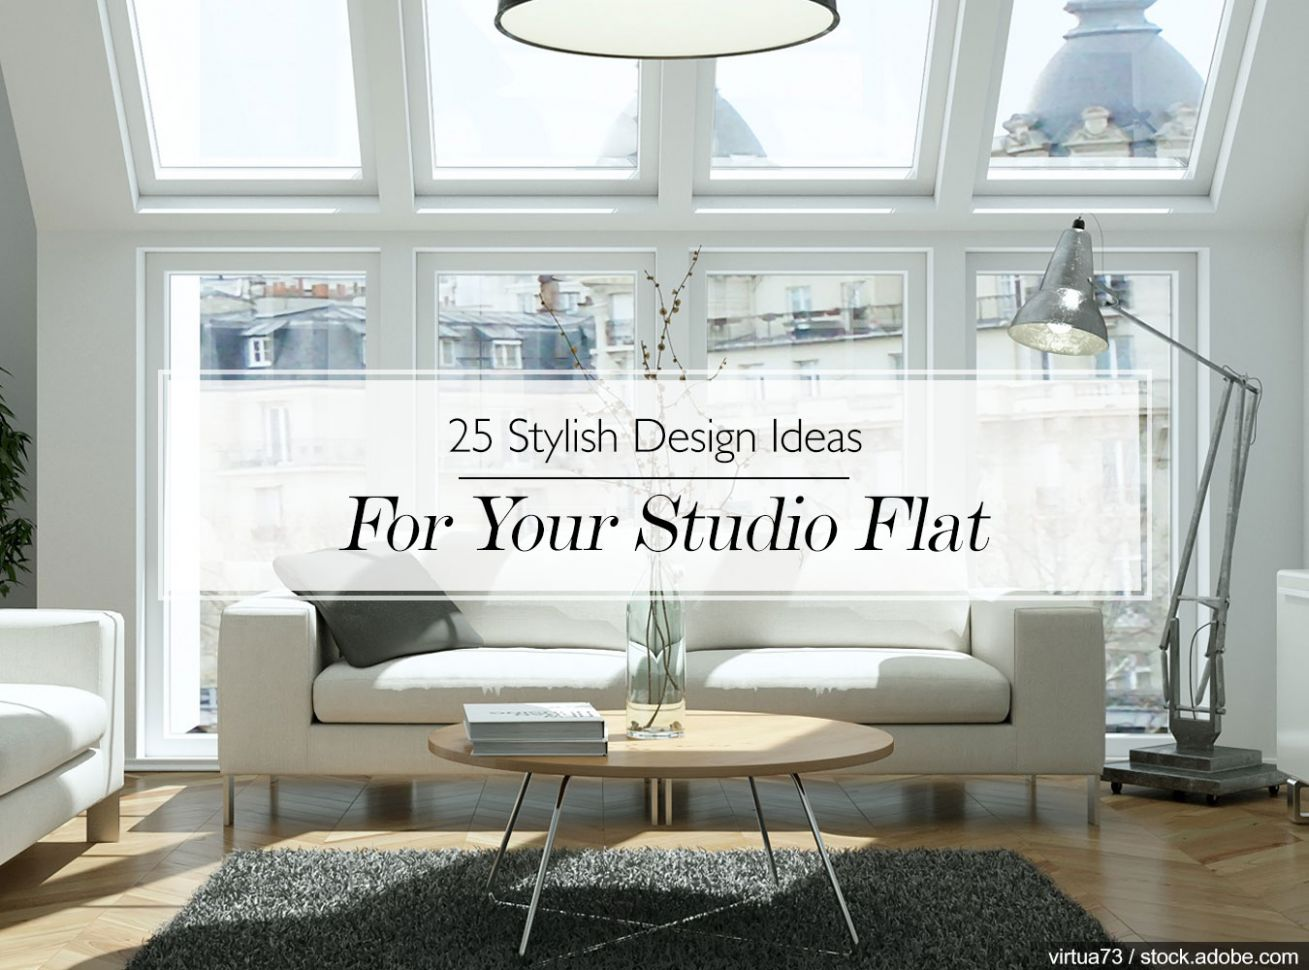 11 Stylish Design Ideas For Your Studio Flat | The LuxPad